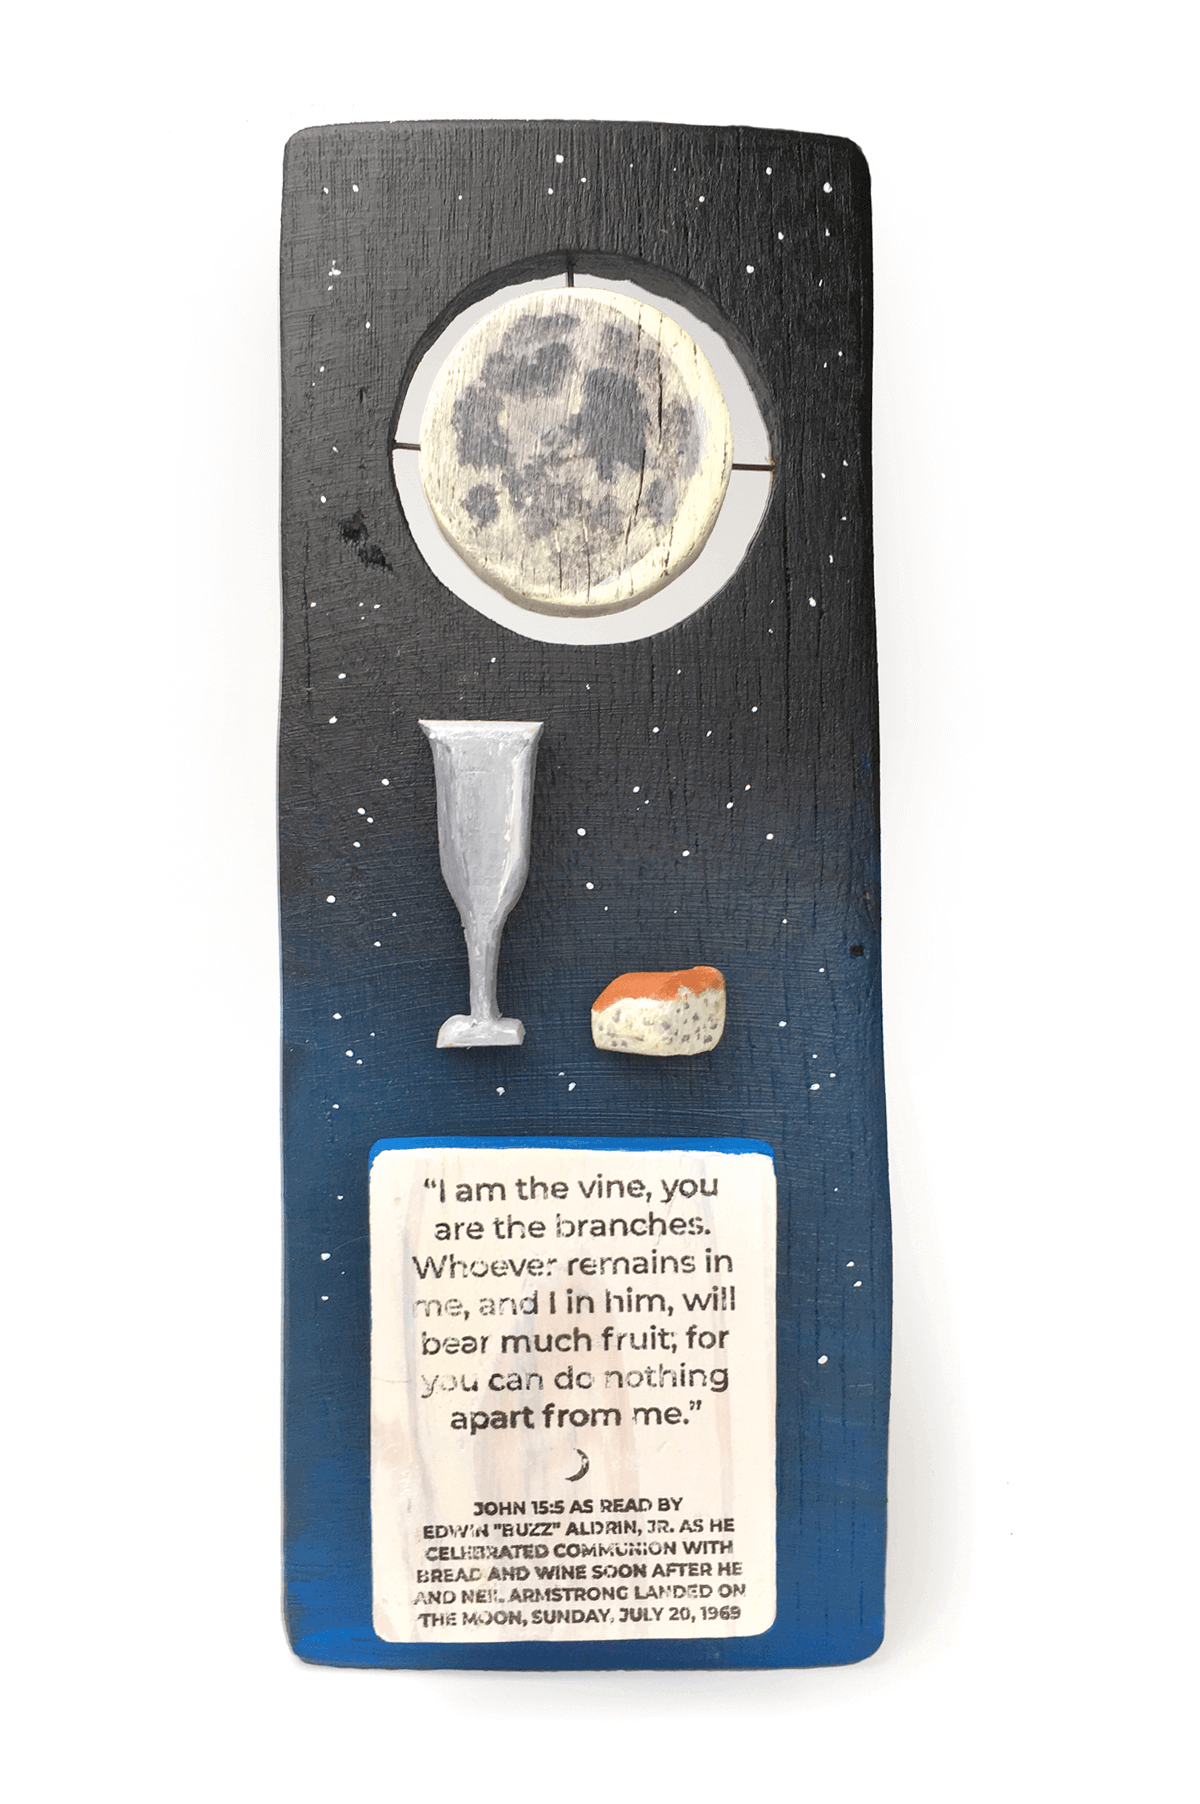 Image of Apollo 11 Communion sculpture